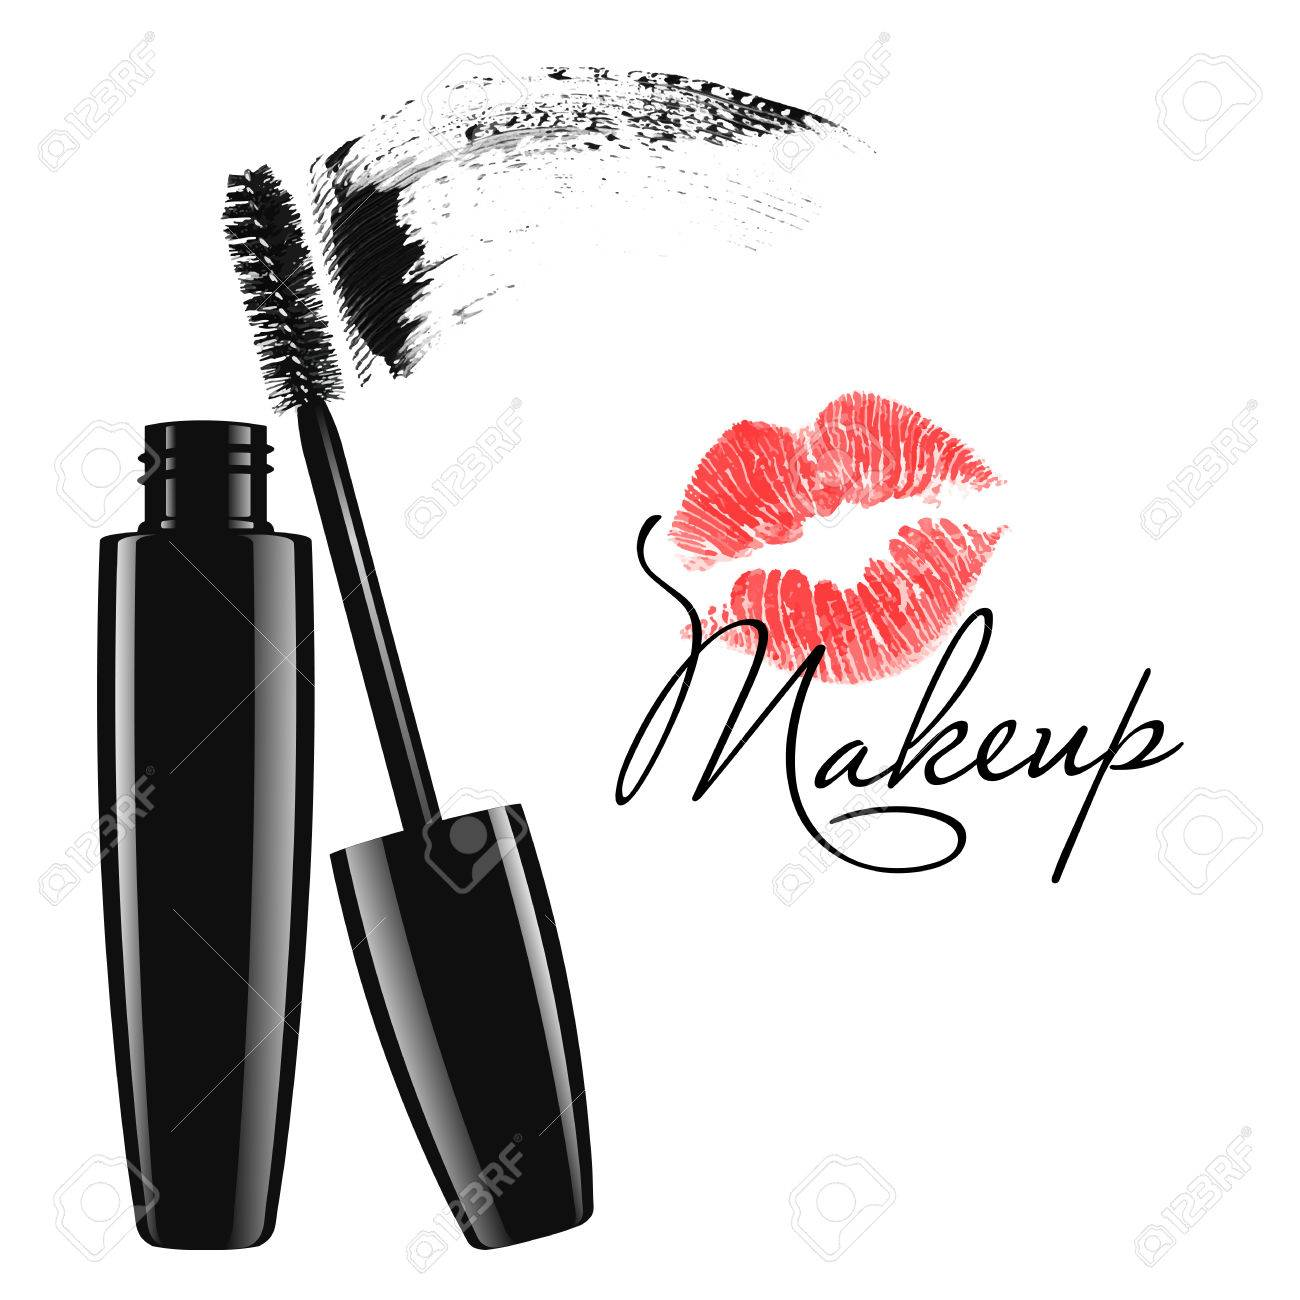 Cosmetic product design vector illustration. Makeup mascara tube,..